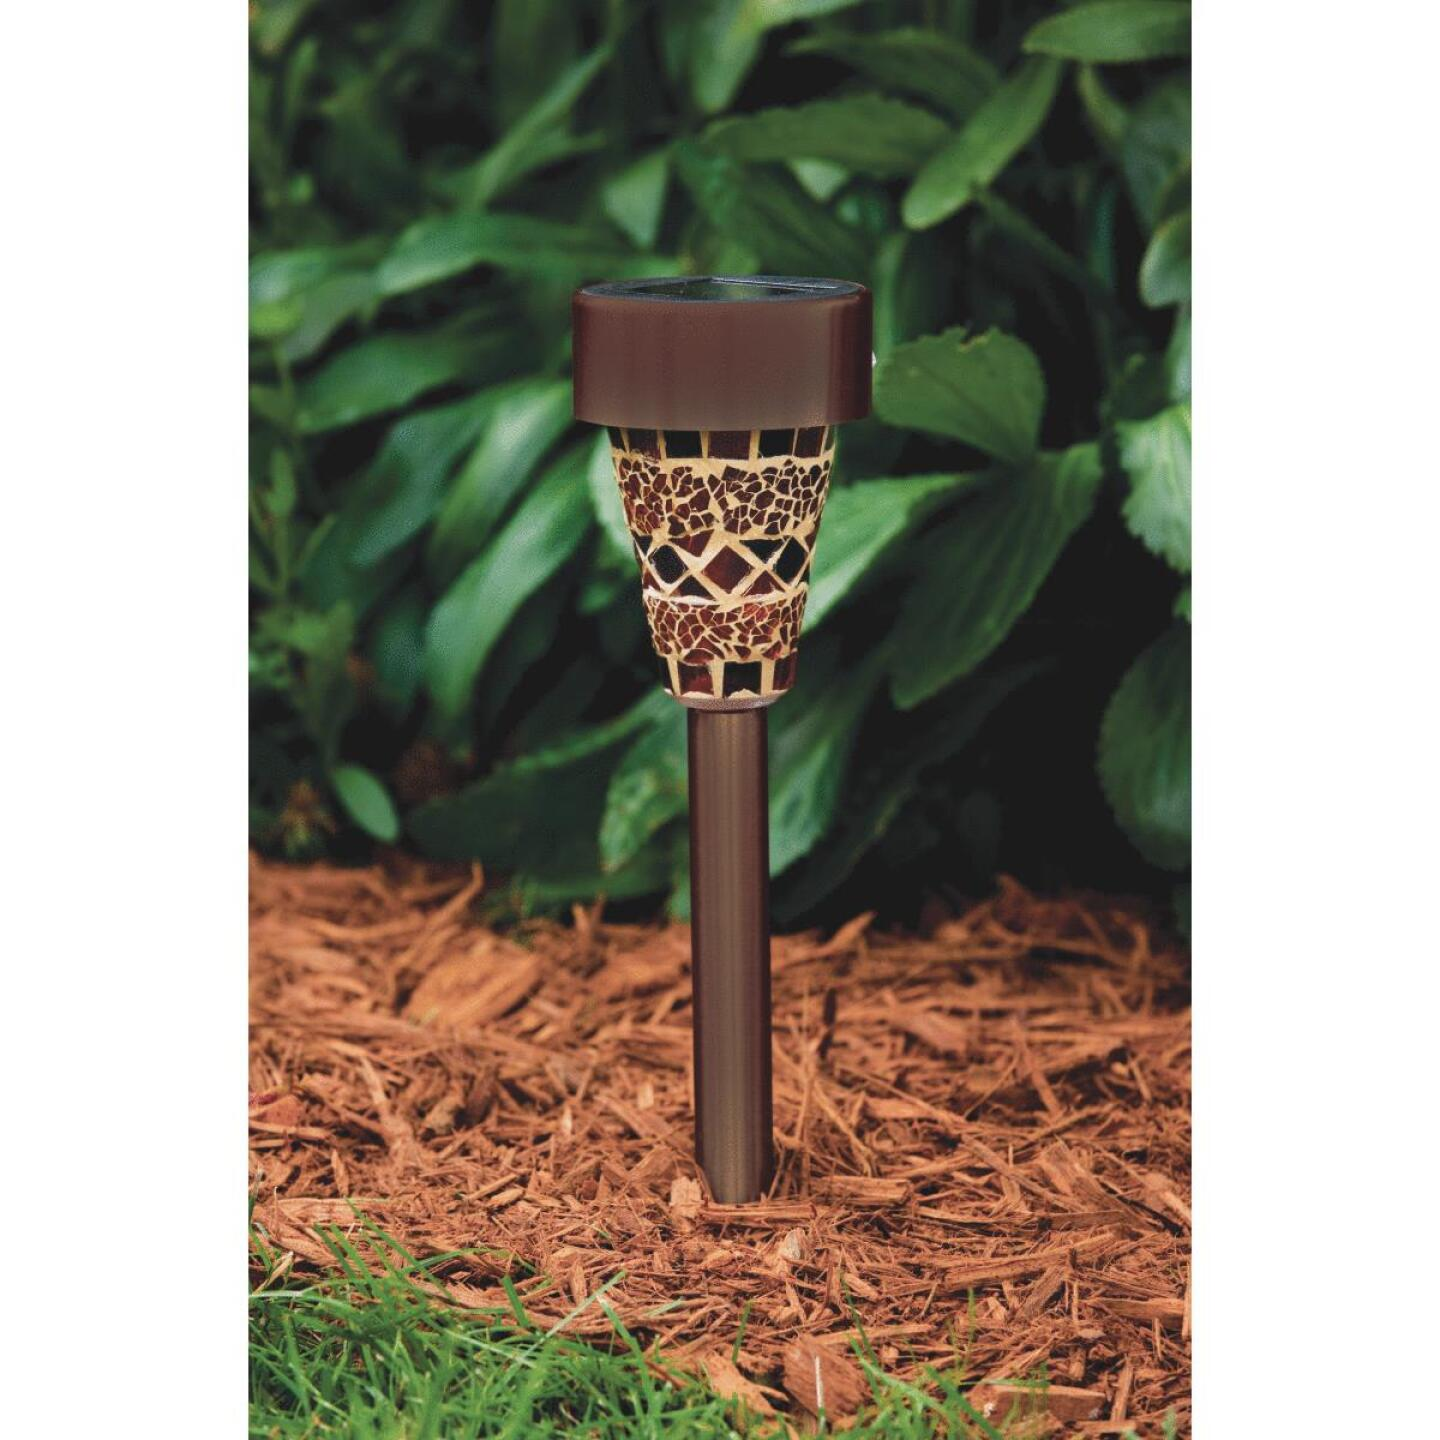 Outdoor Expressions Harvest Or Autumn Mosaic 2.10 Lumens Plastic Solar Path Light Image 7